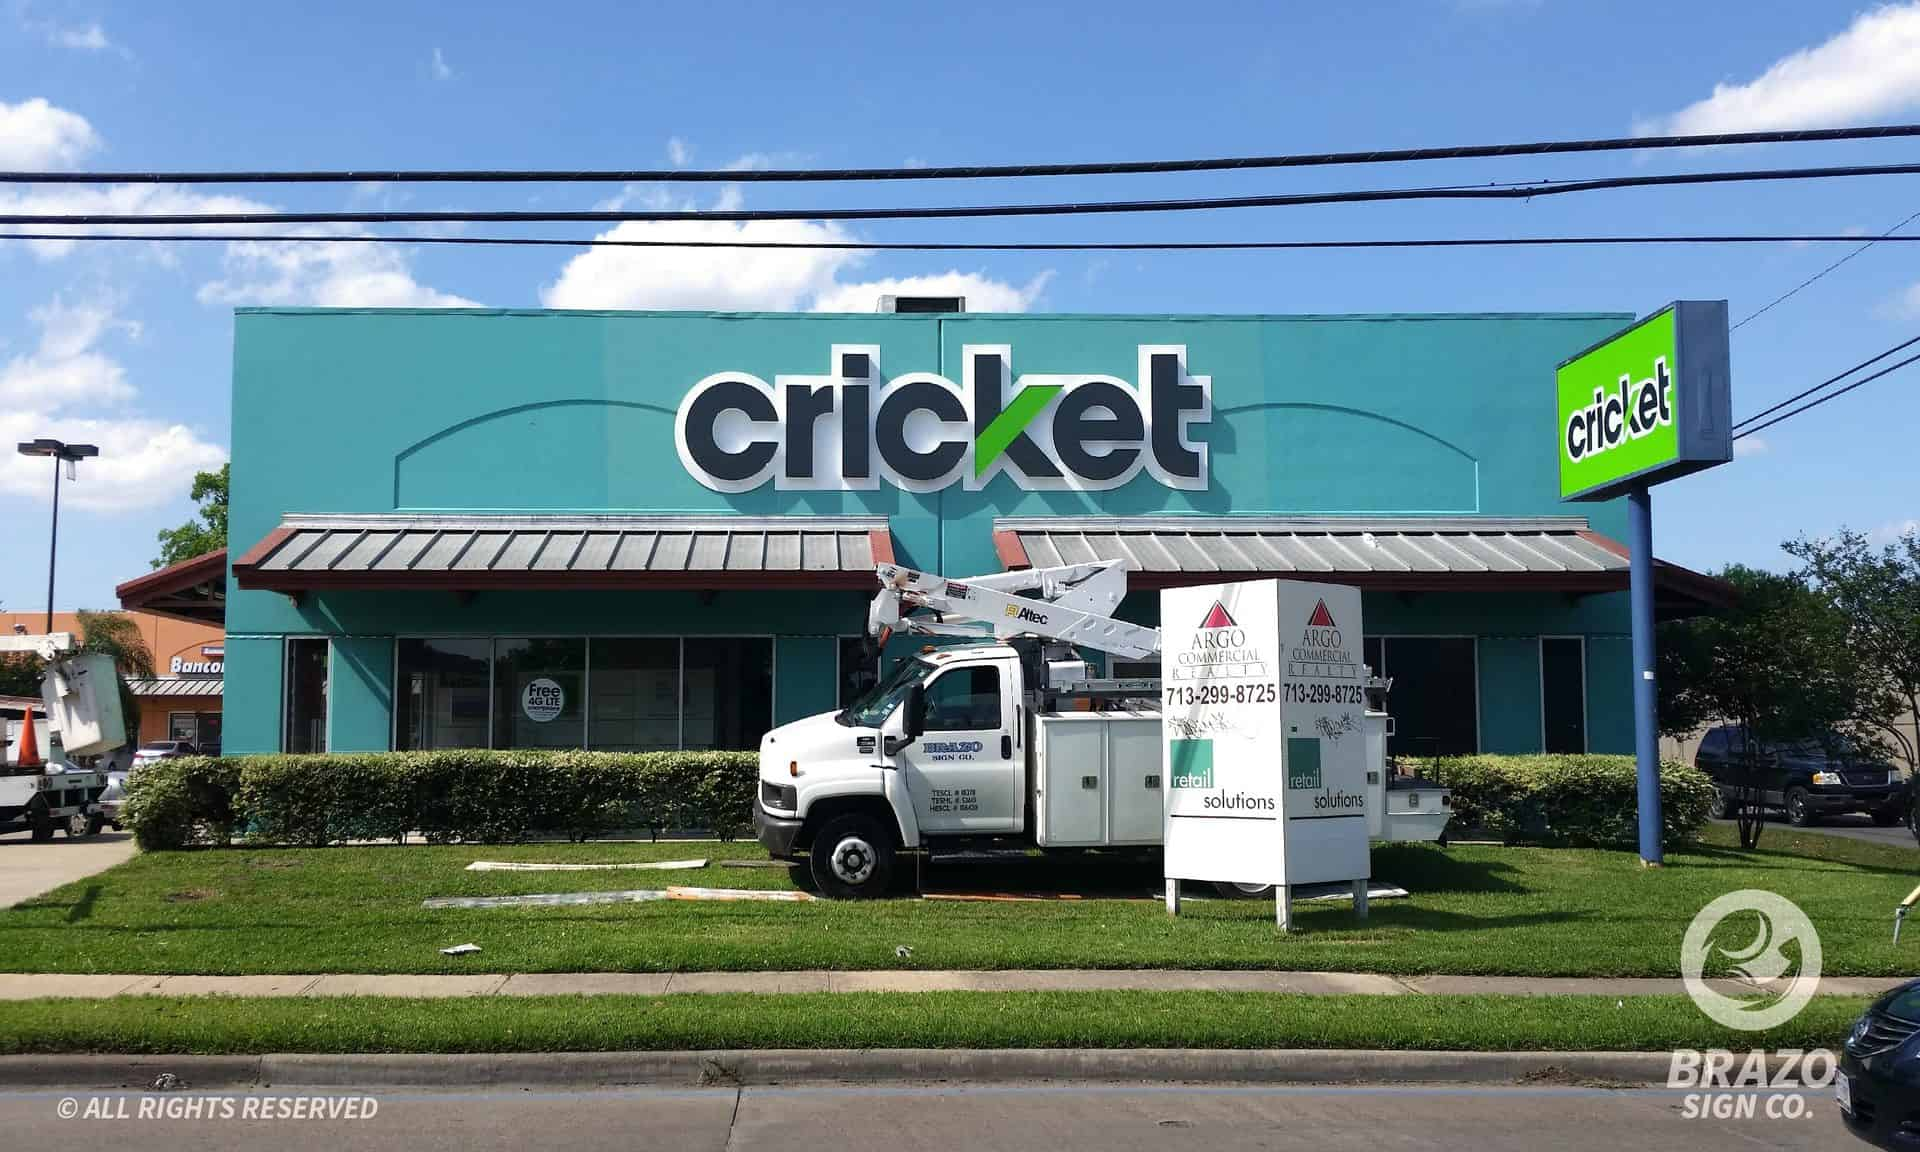 cricket-store-pylon-sign-houston-texas